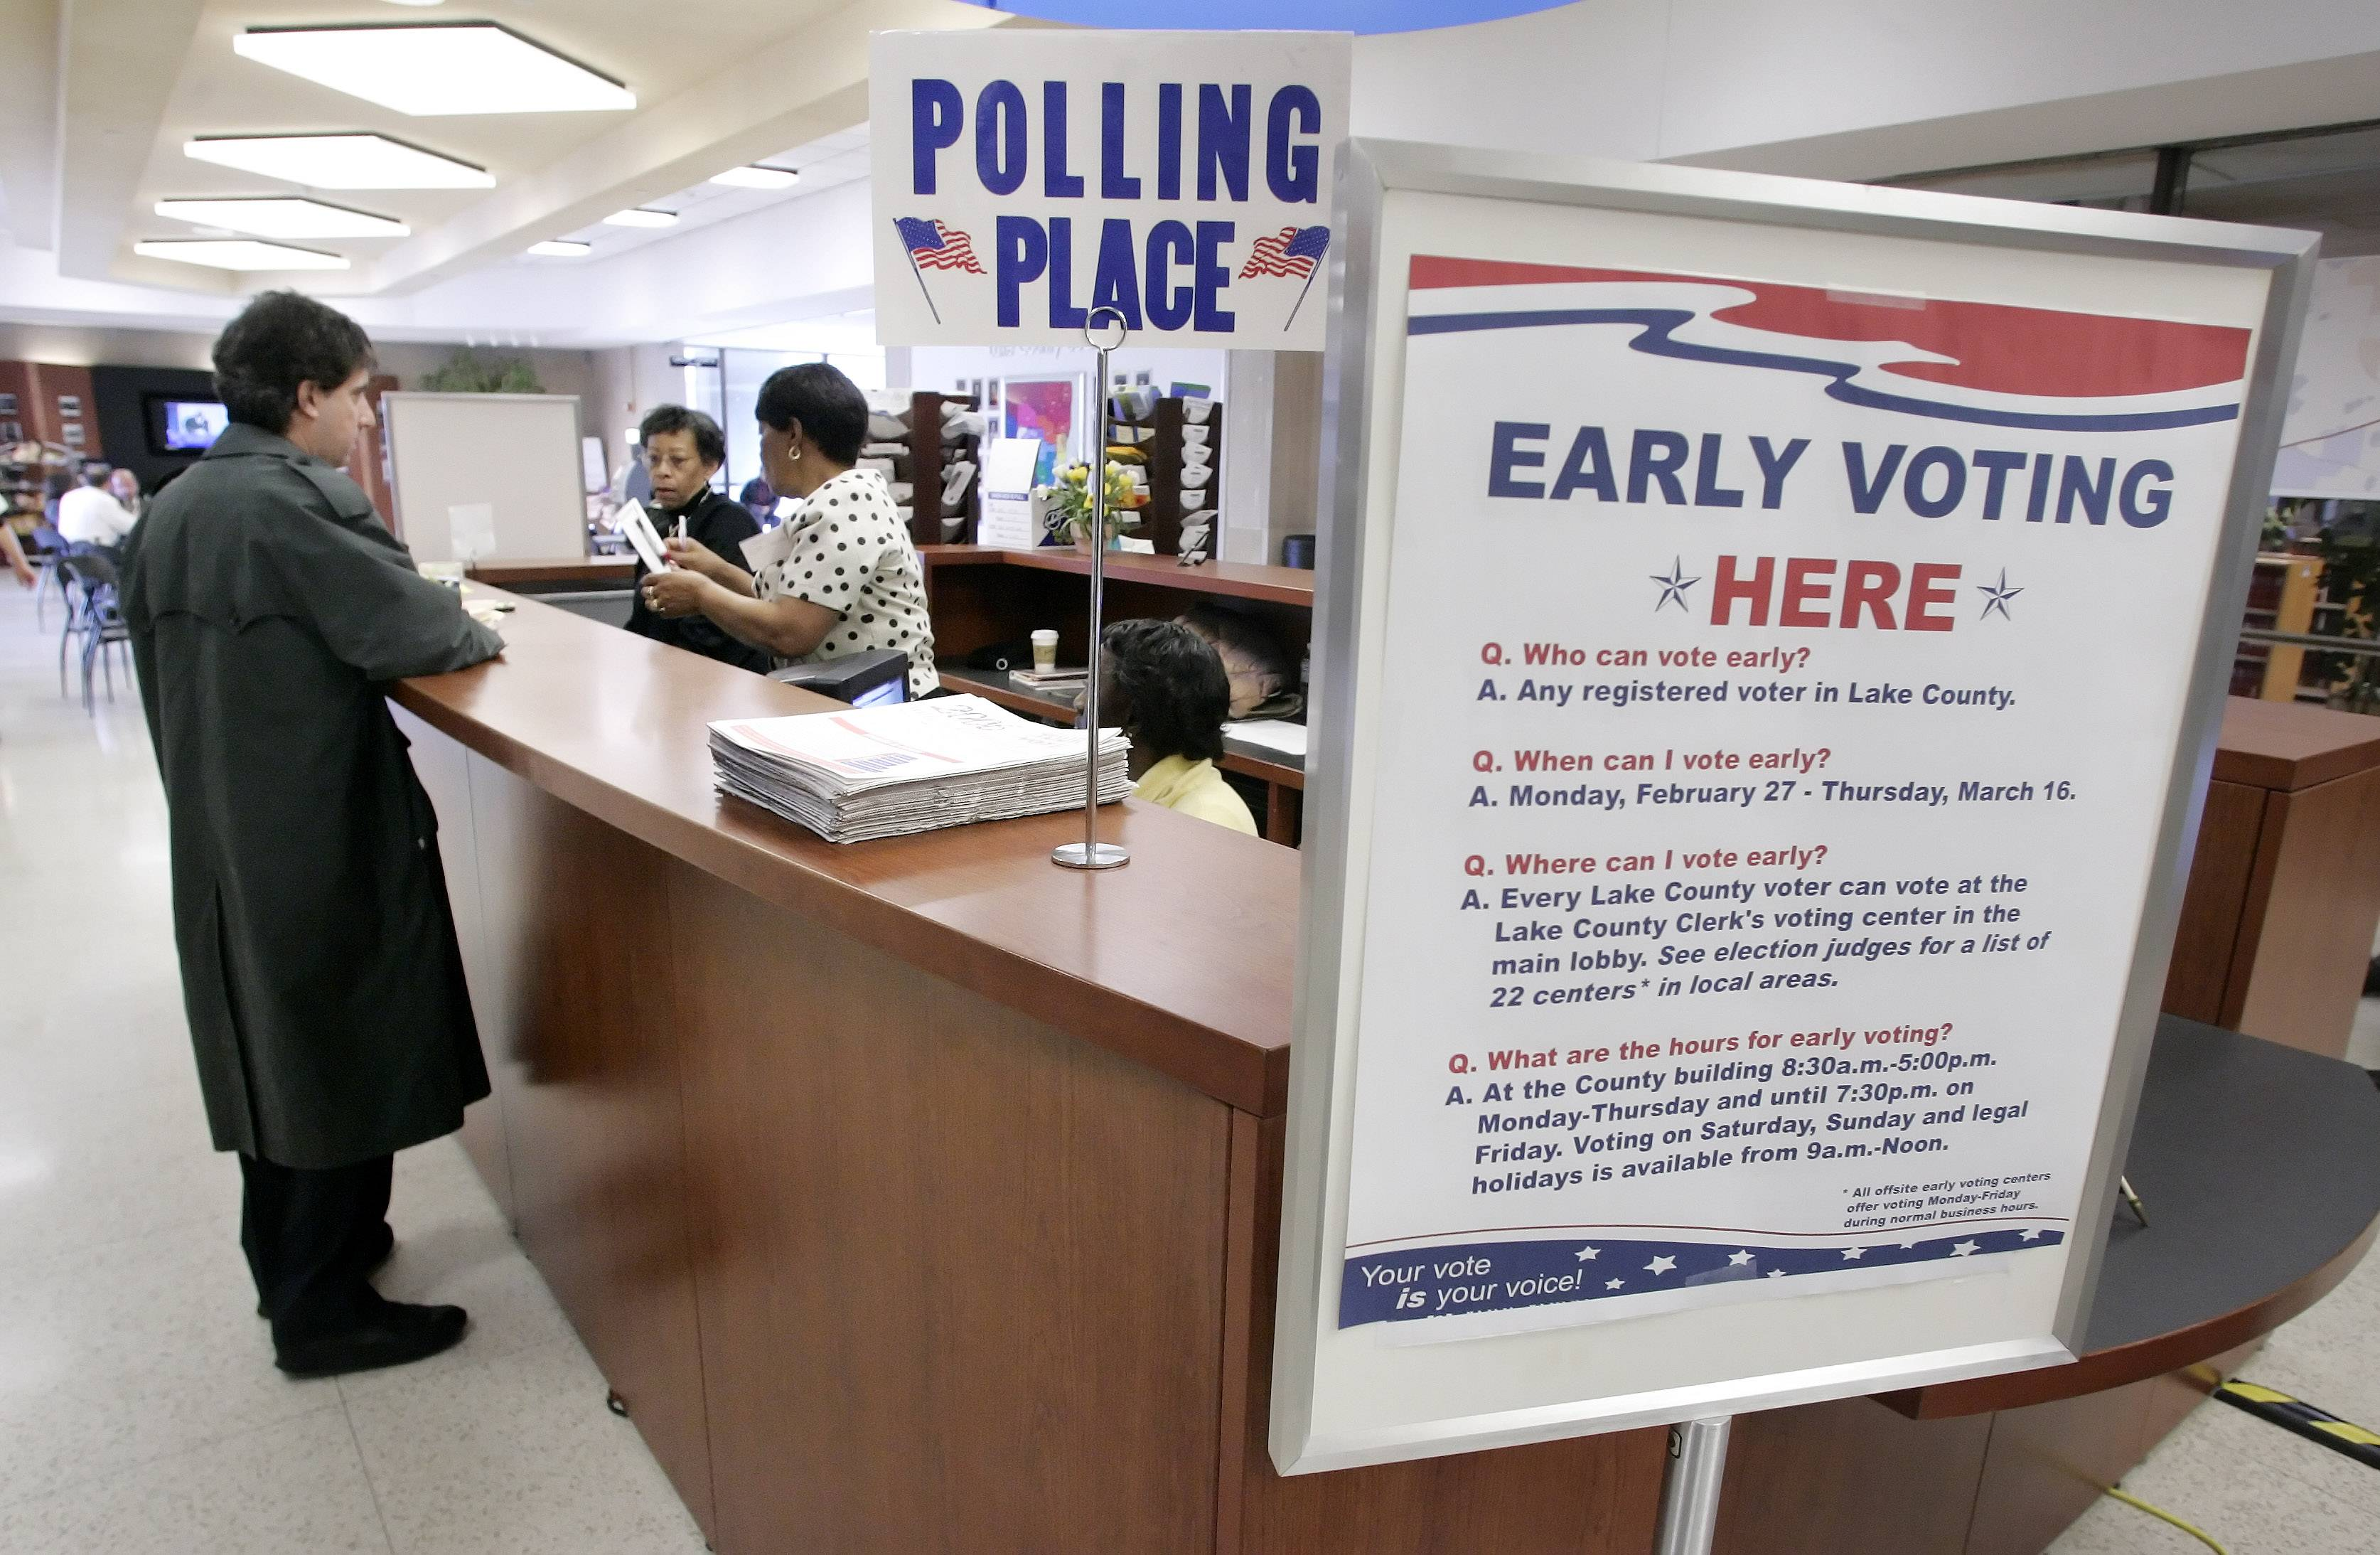 Early voting begins today at many locations across the suburbs.